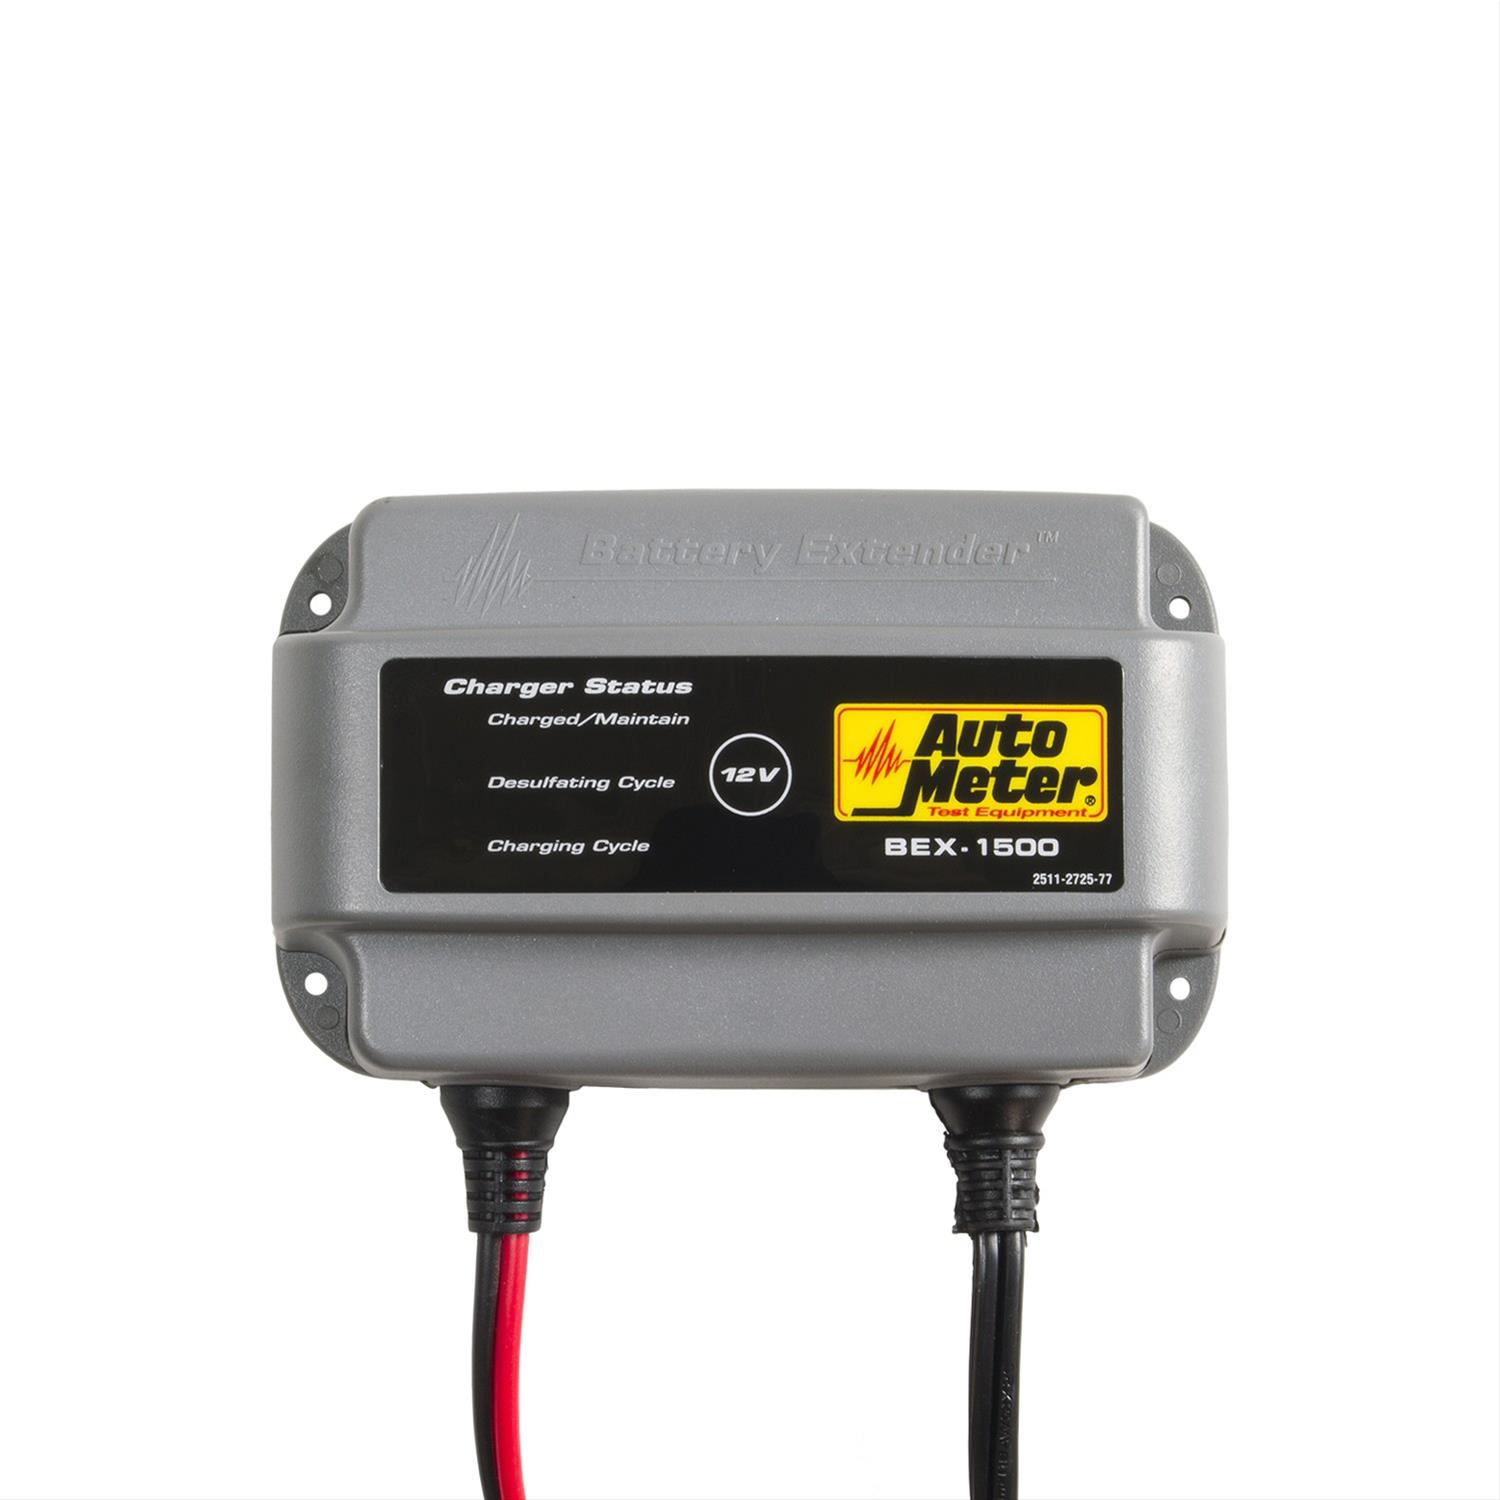 Backup Battery For Amp Meter : Auto meter bex battery charger volt